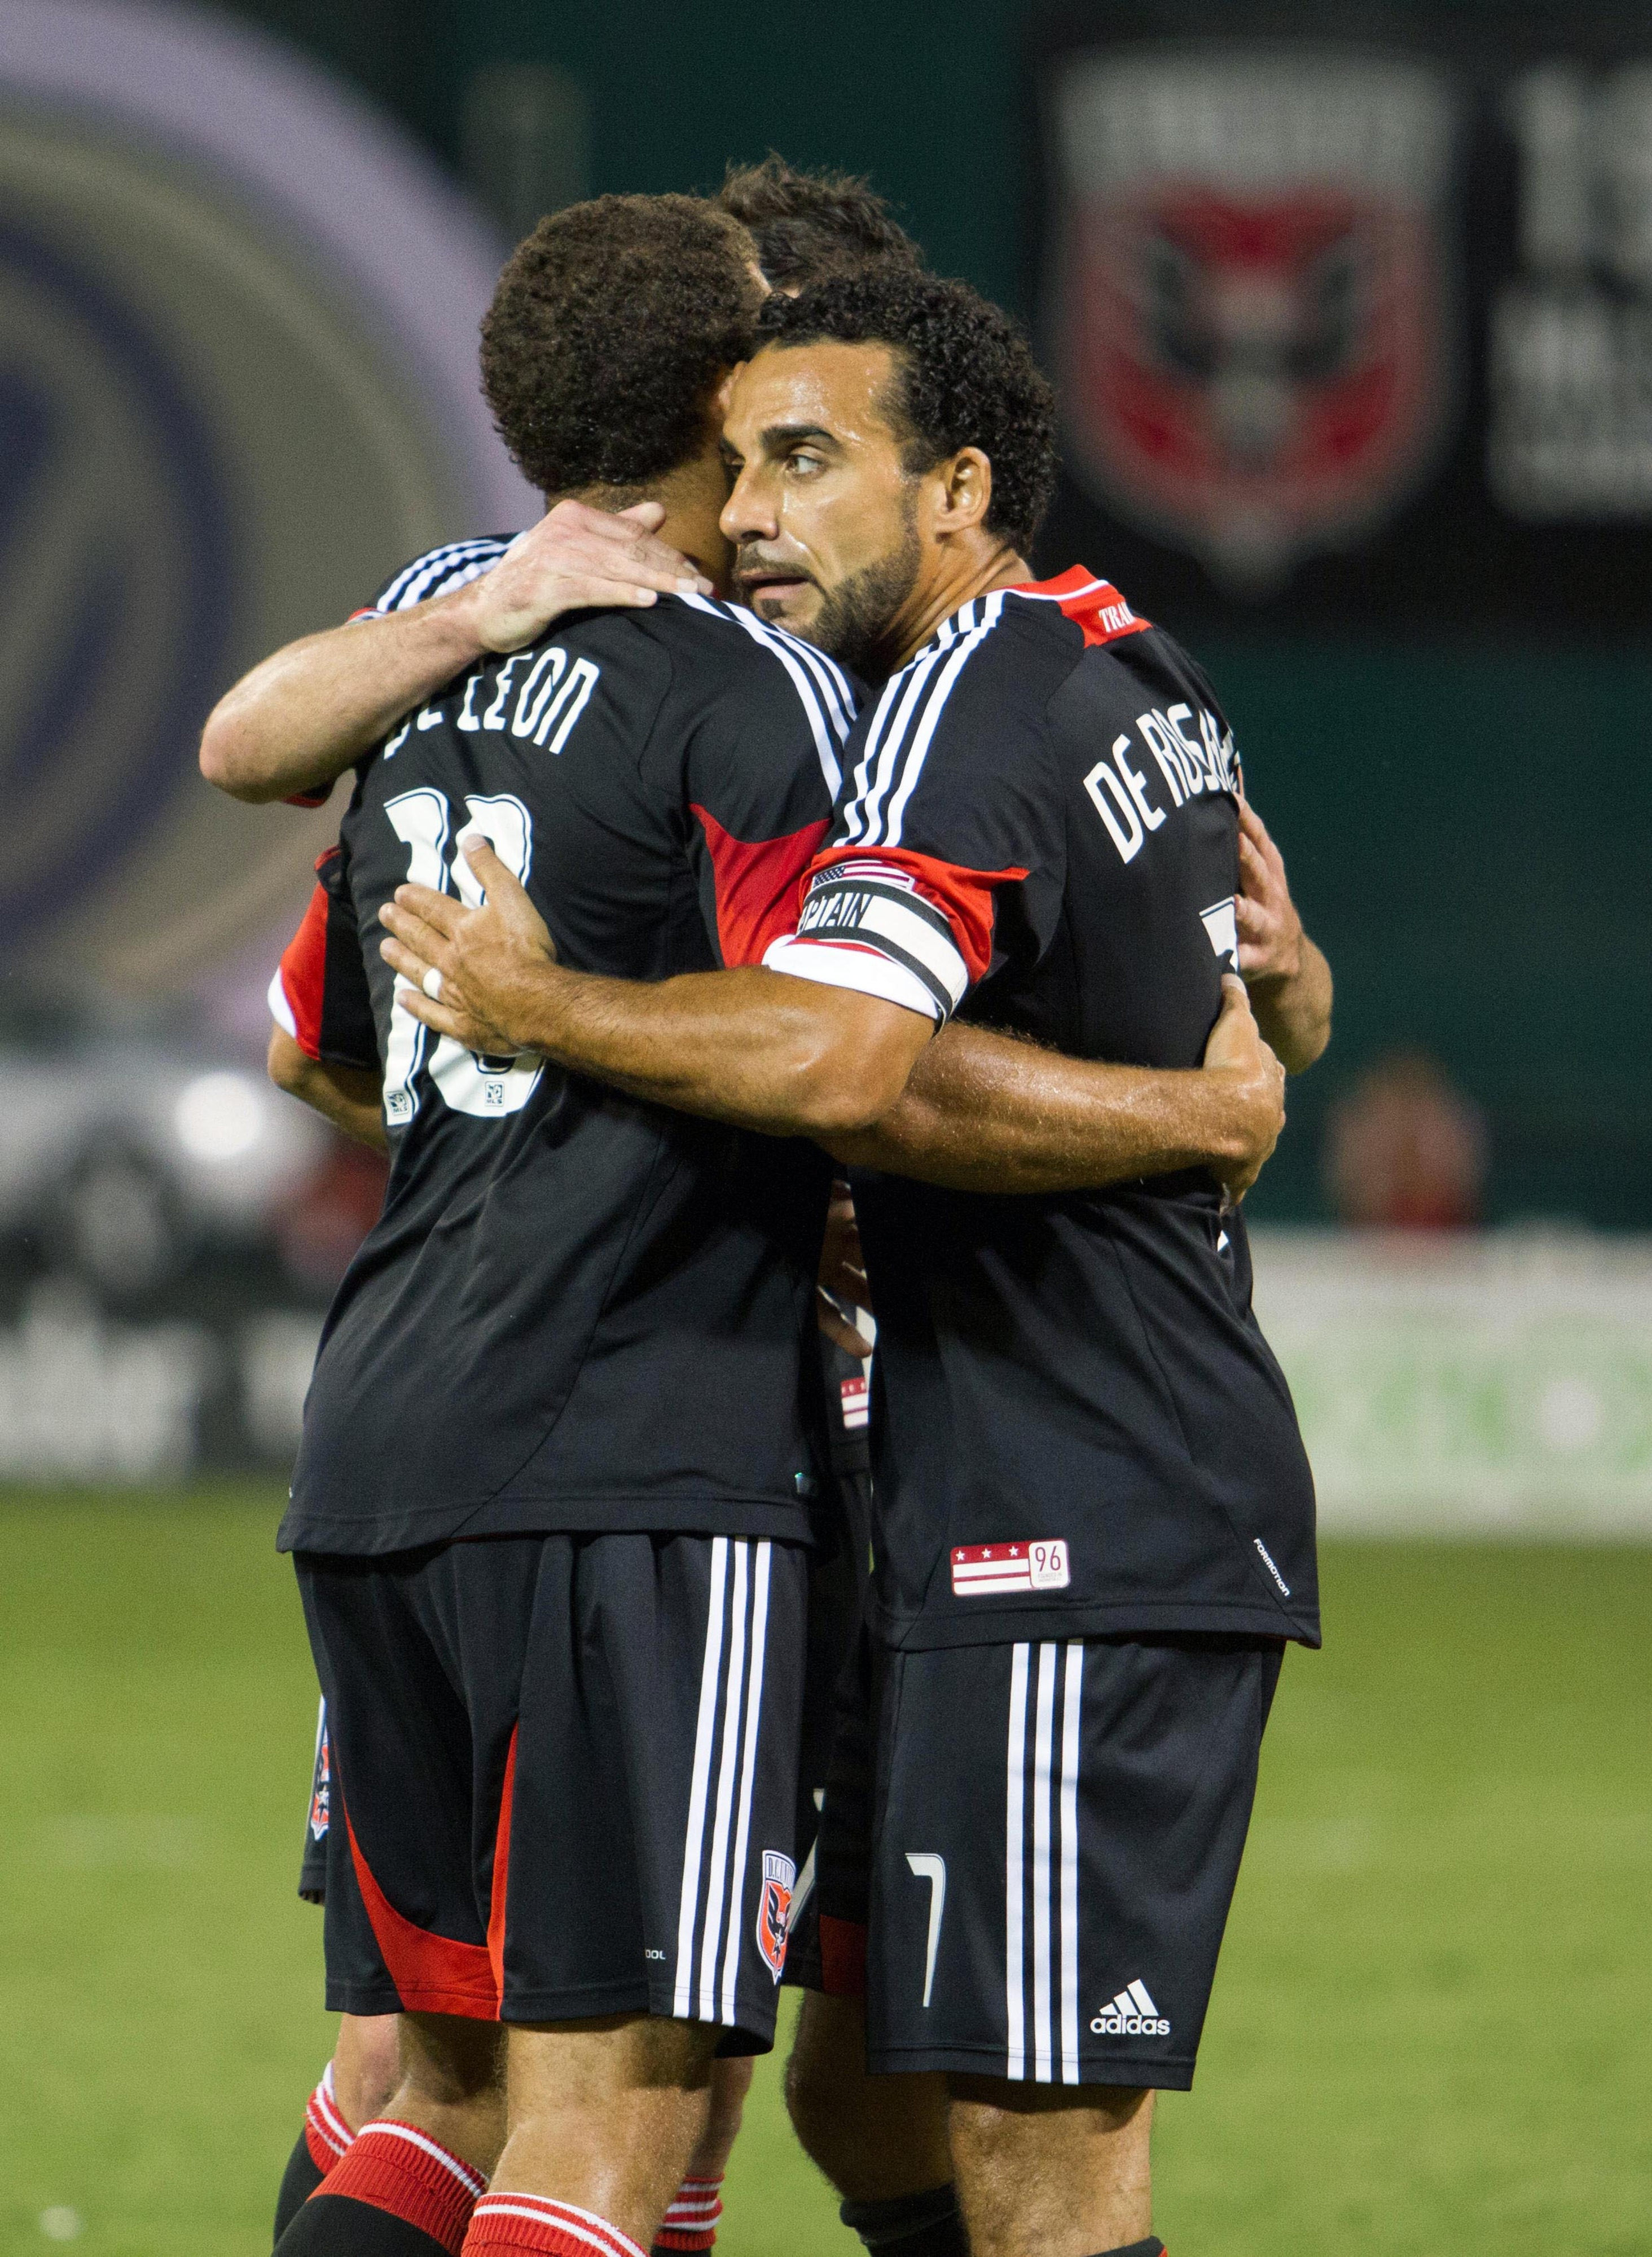 It's only fitting that Nick DeLeon would set up Dwayne De Rosario's 100th MLS goal.